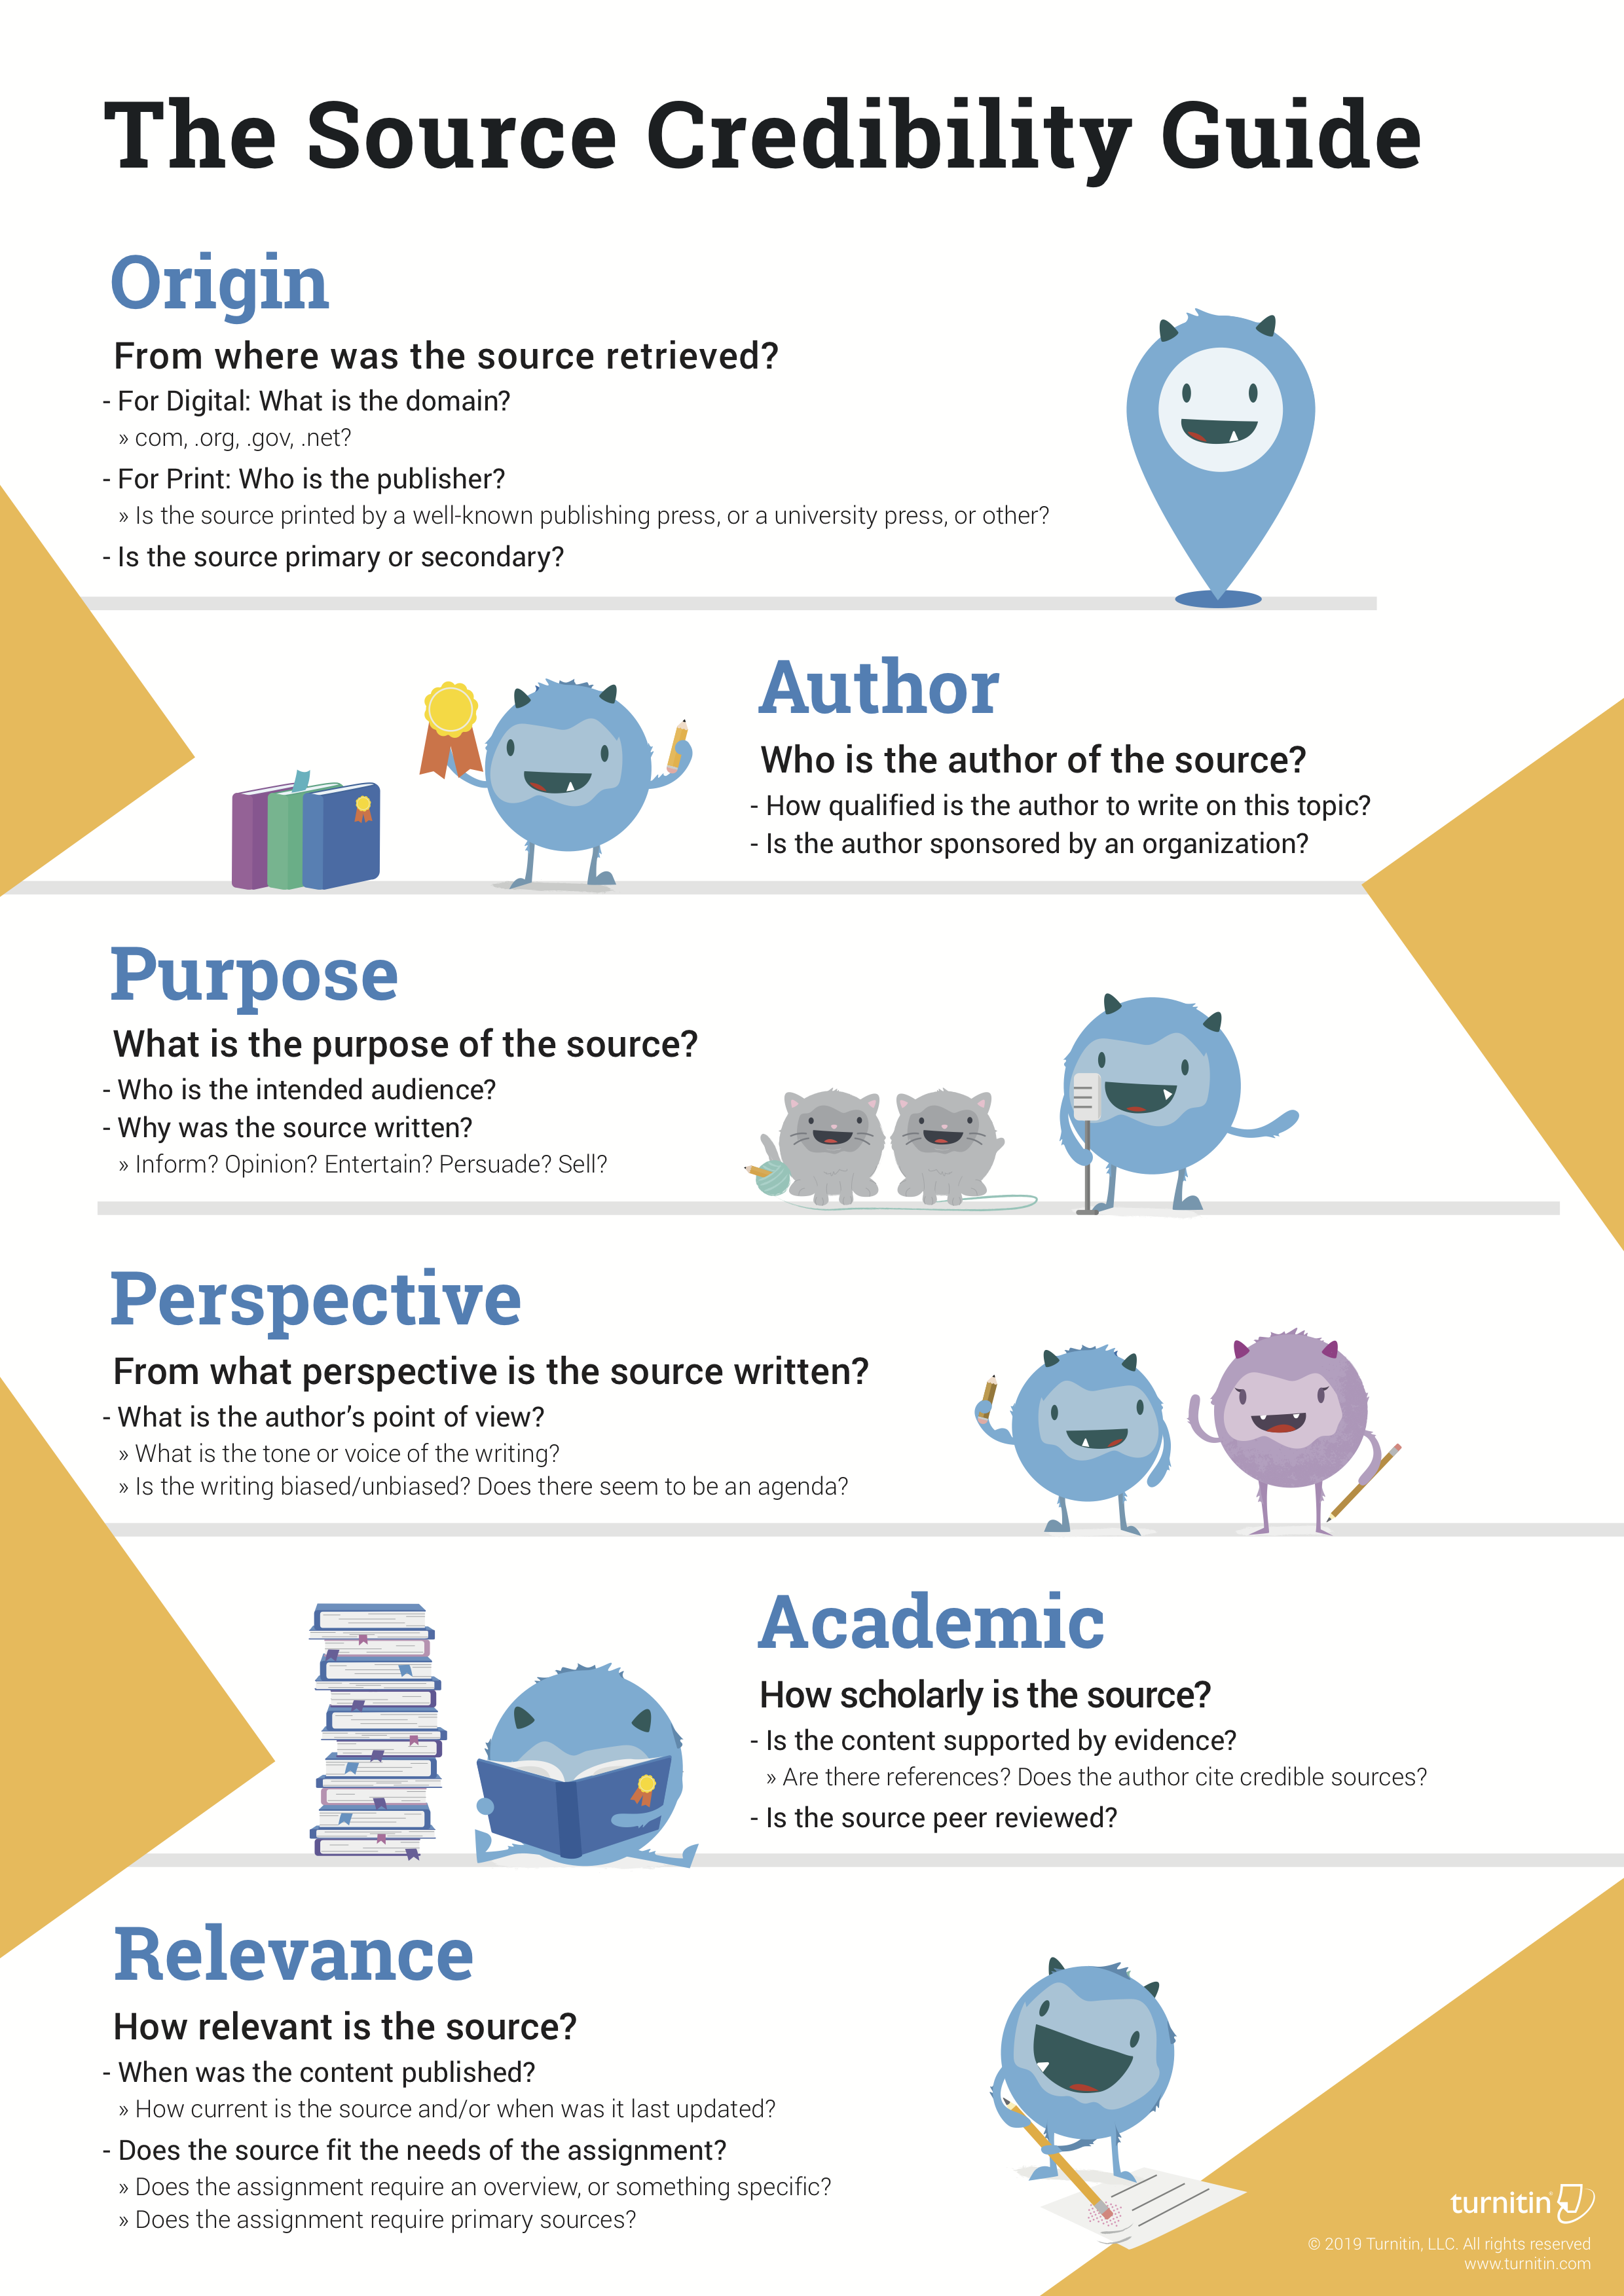 The Source Credibility Guide Information Literacy Library Skills Social Media Etiquette